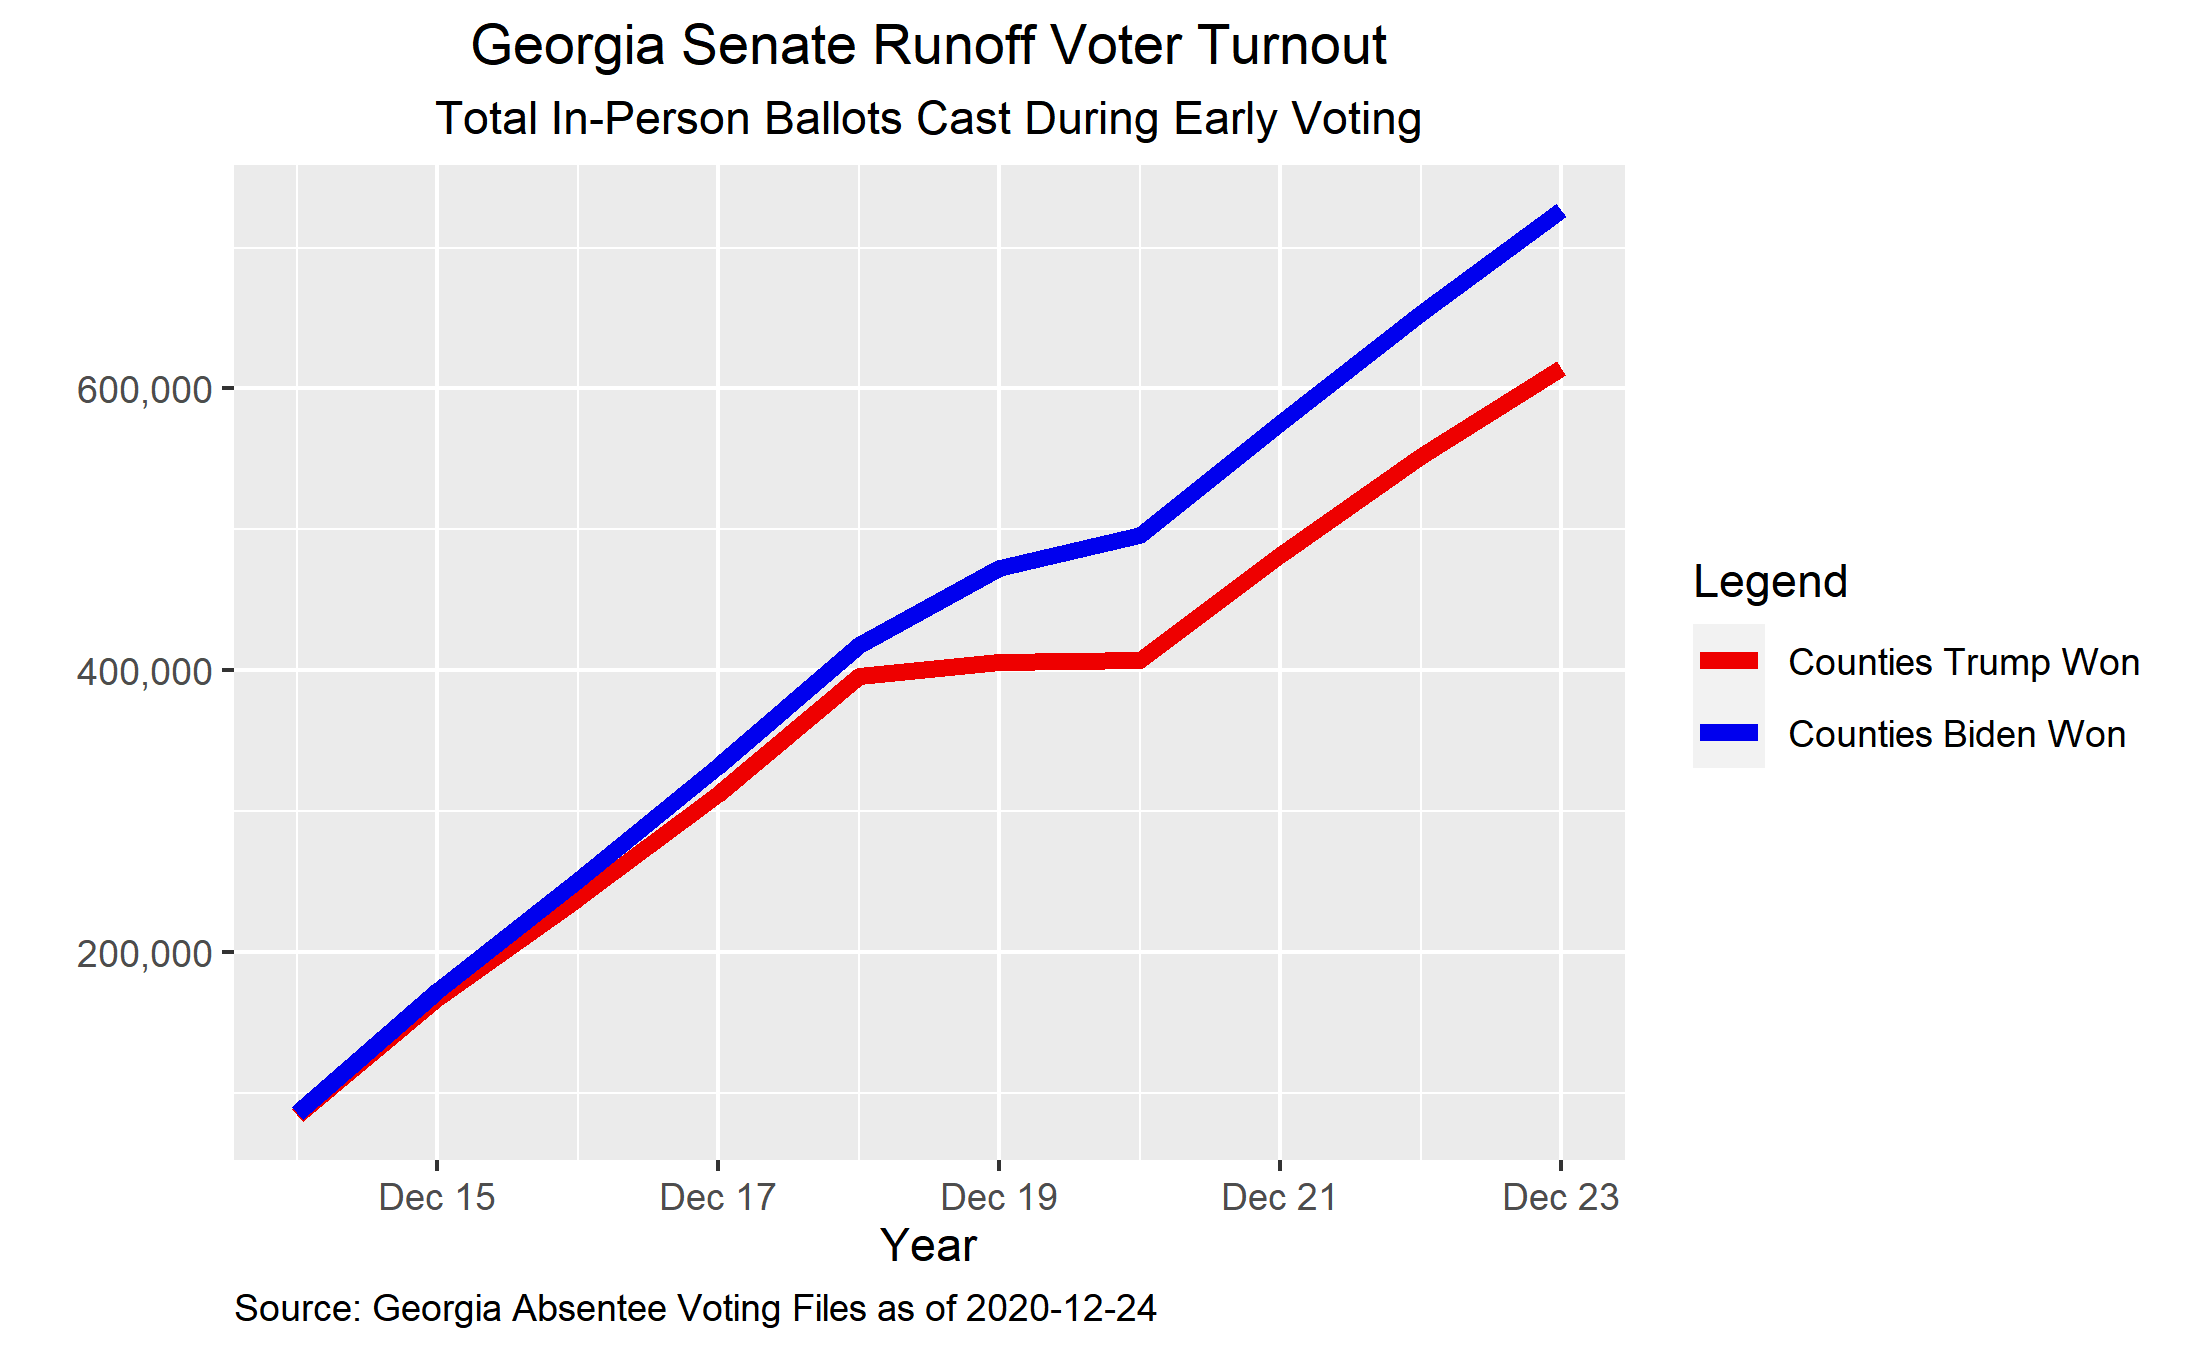 During early voting (12/23), Georgia's Democratic counties cast more early in-person votes than Republican ones.